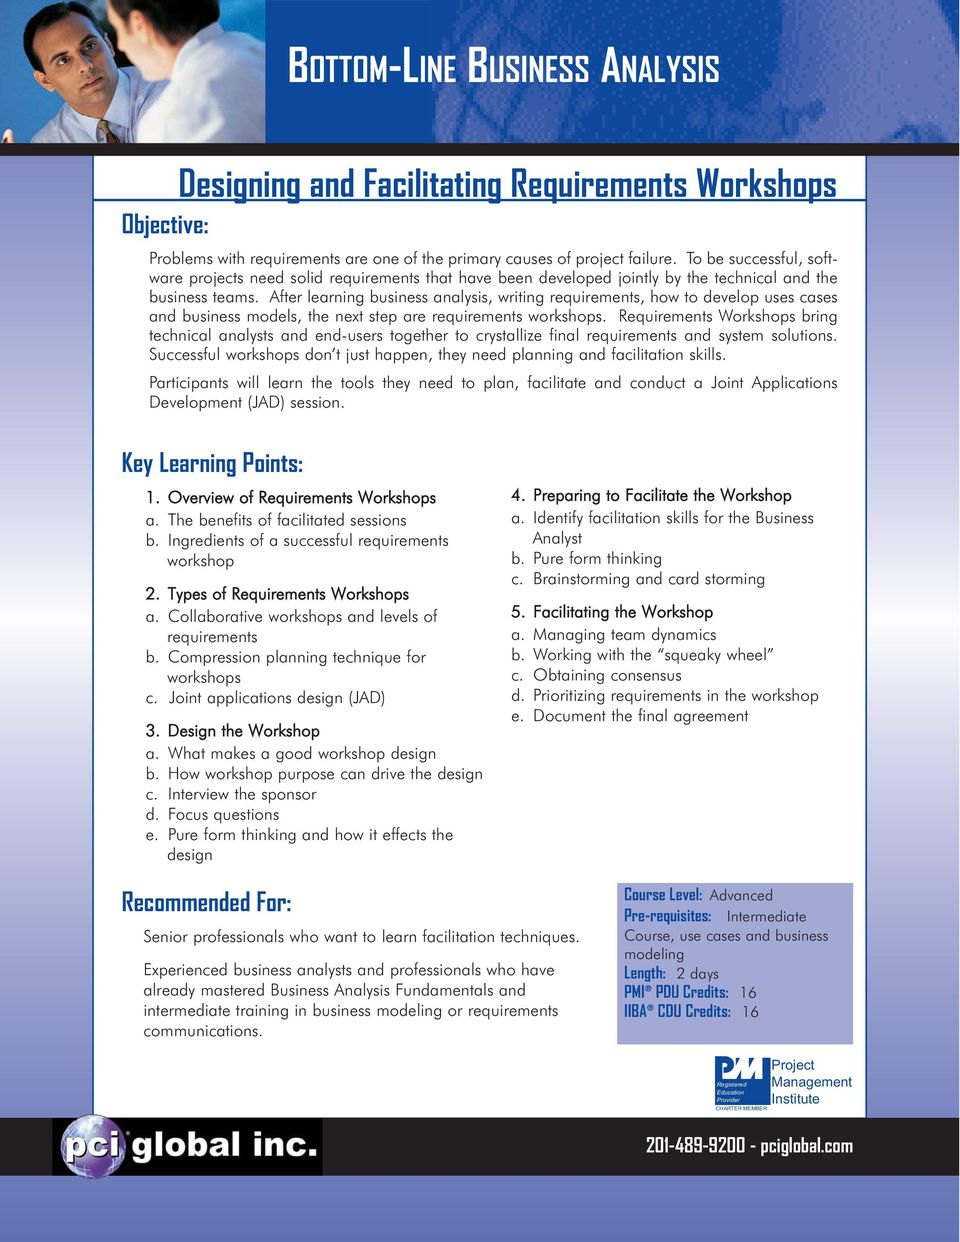 After learning business analysis, writing requirements, how to develop uses cases and business models, the next step are requirements workshops.